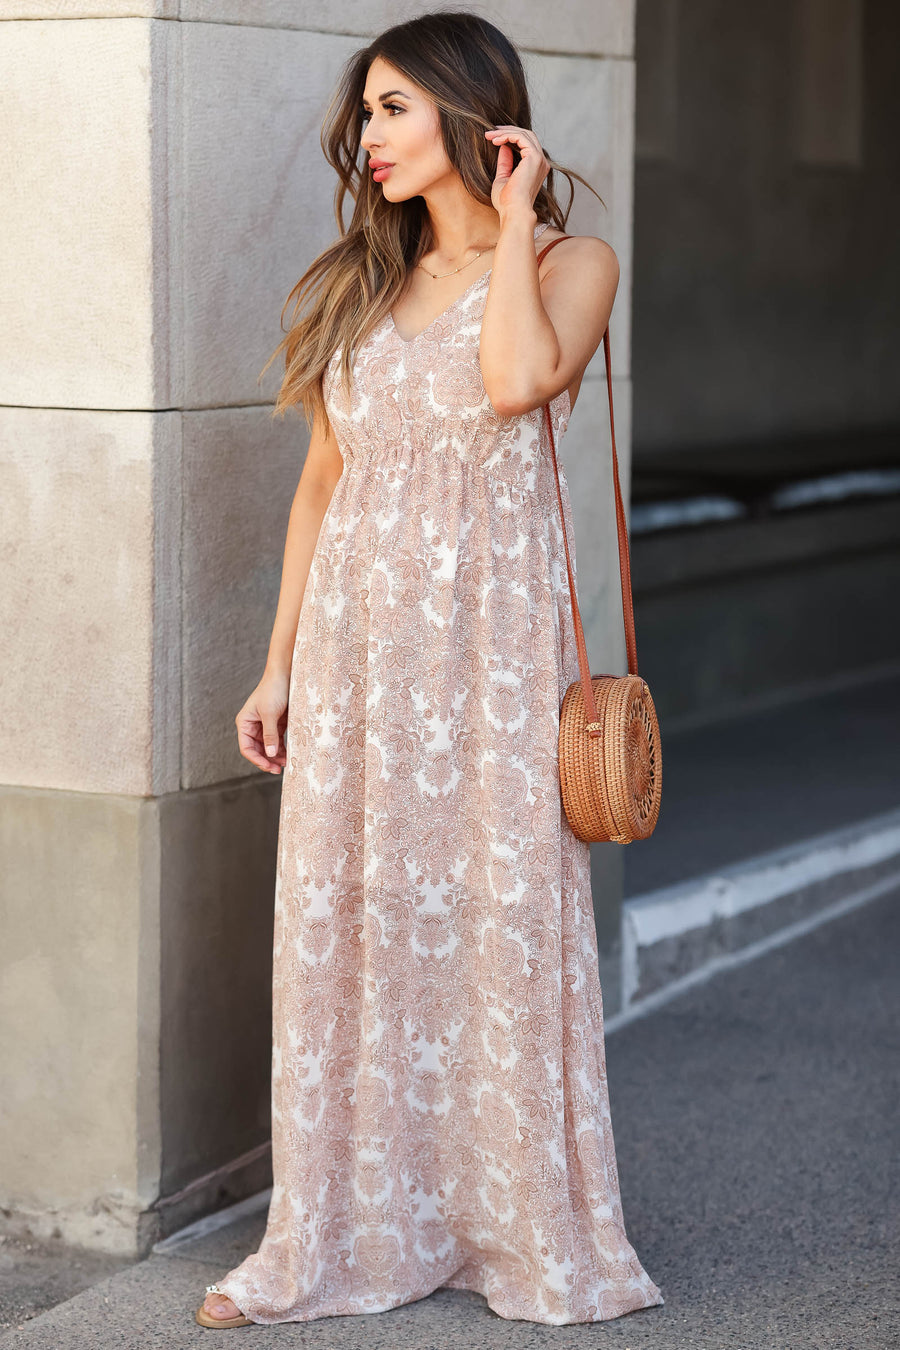 Come Away With Me Maxi Dress - Dusty Rose closet candy women's beautiful printed open back long dress back